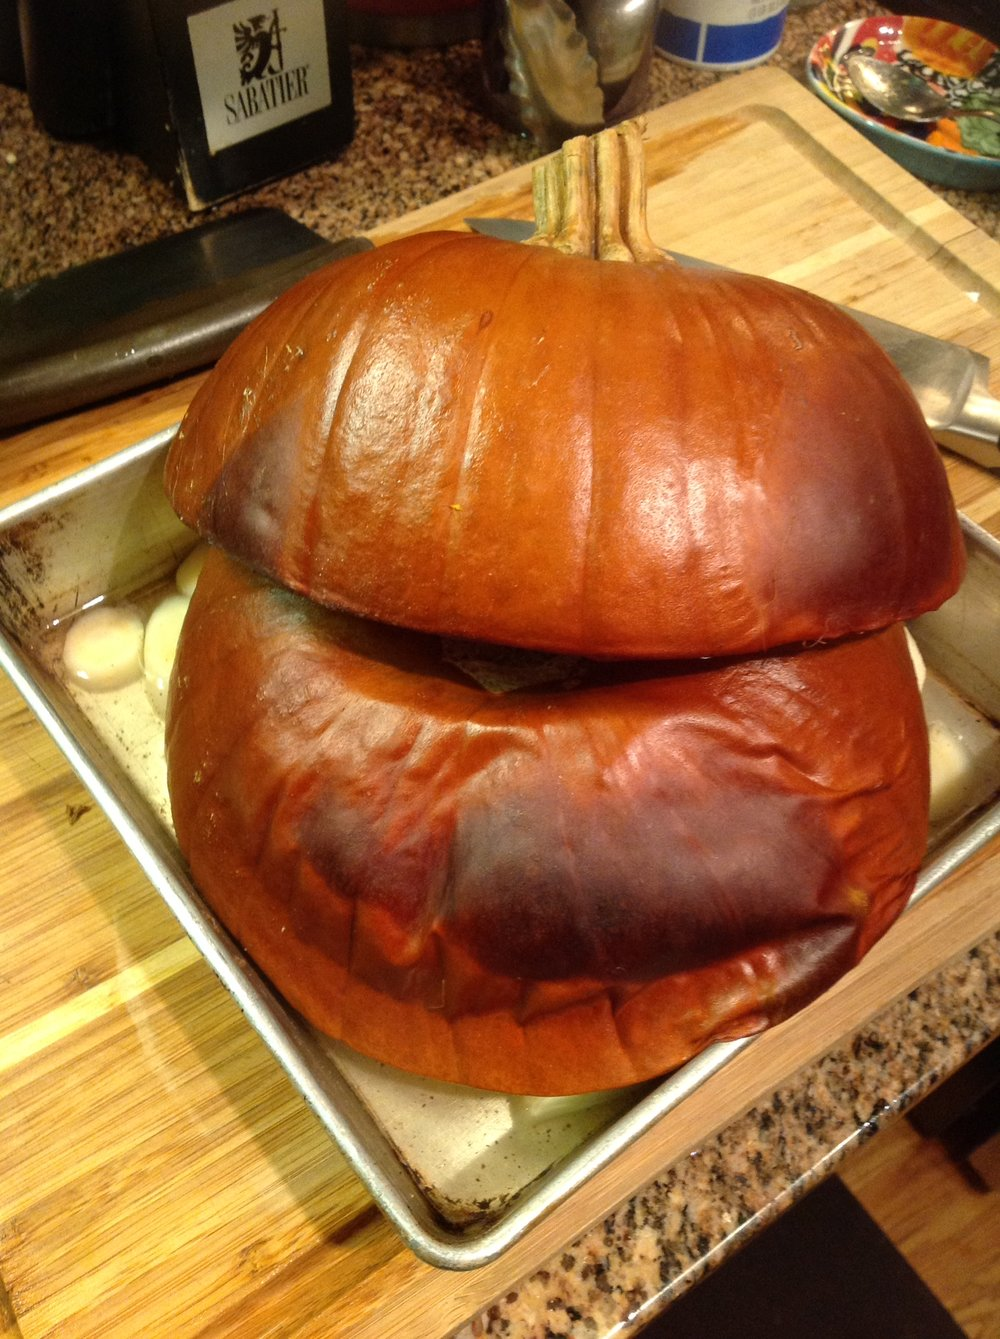 Chef's Tip: Whole Pumpkin is Halved and Roasted with Parsnips at high temperature to bring out the natural sweetness